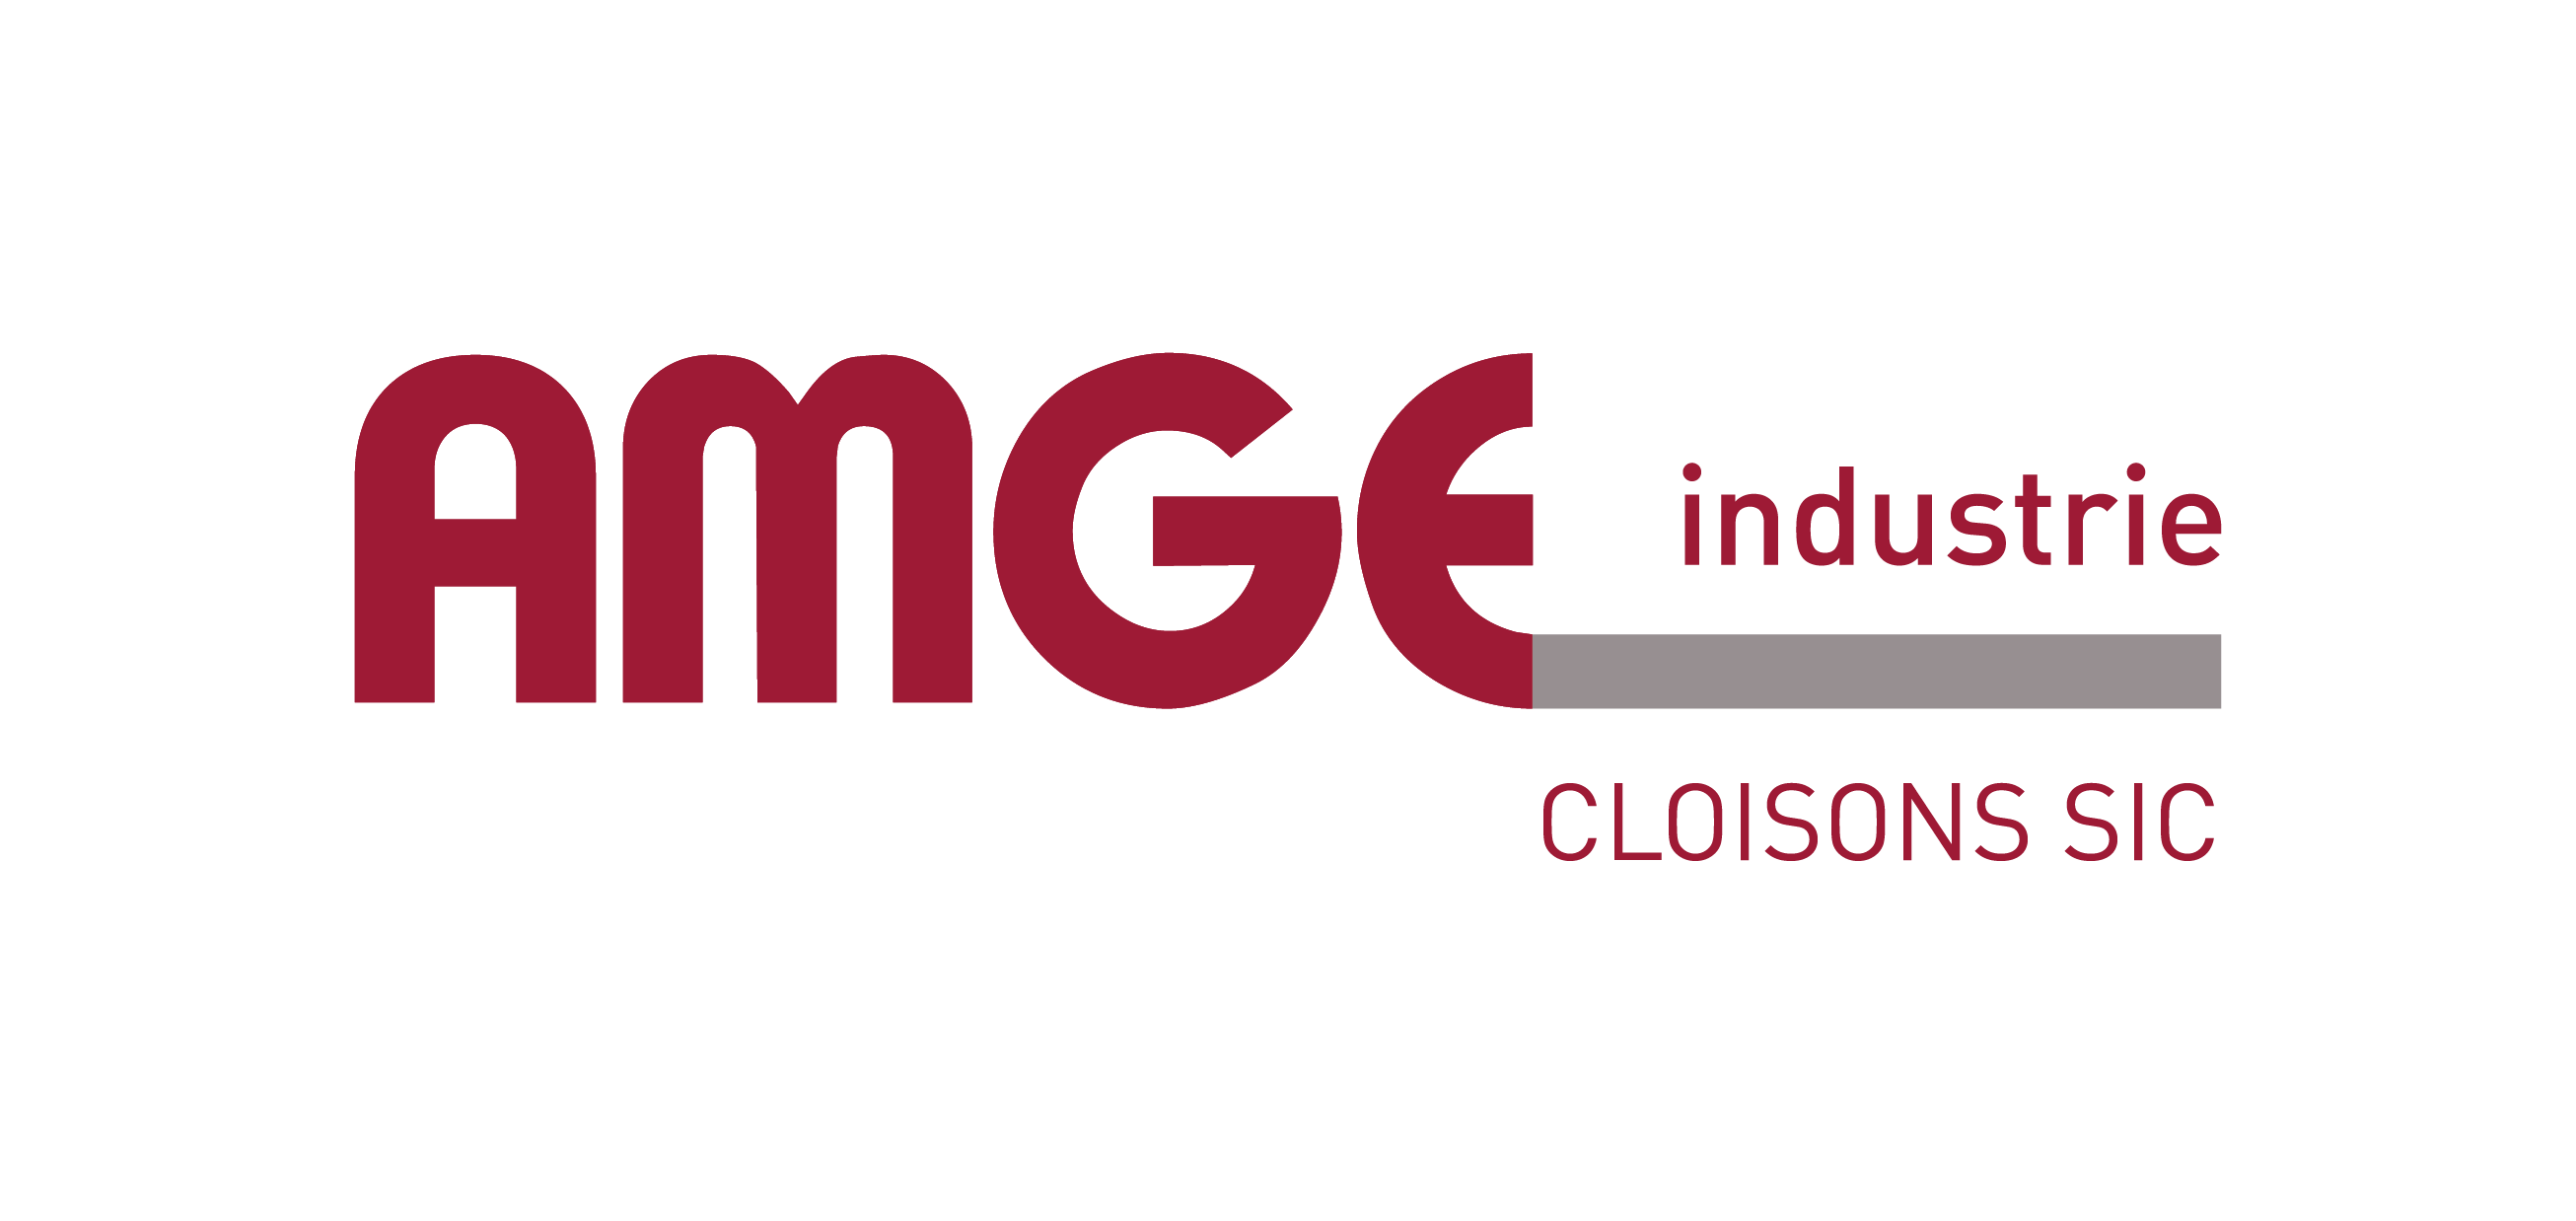 AMGE INDUSTRIE - CLOISONS SIC